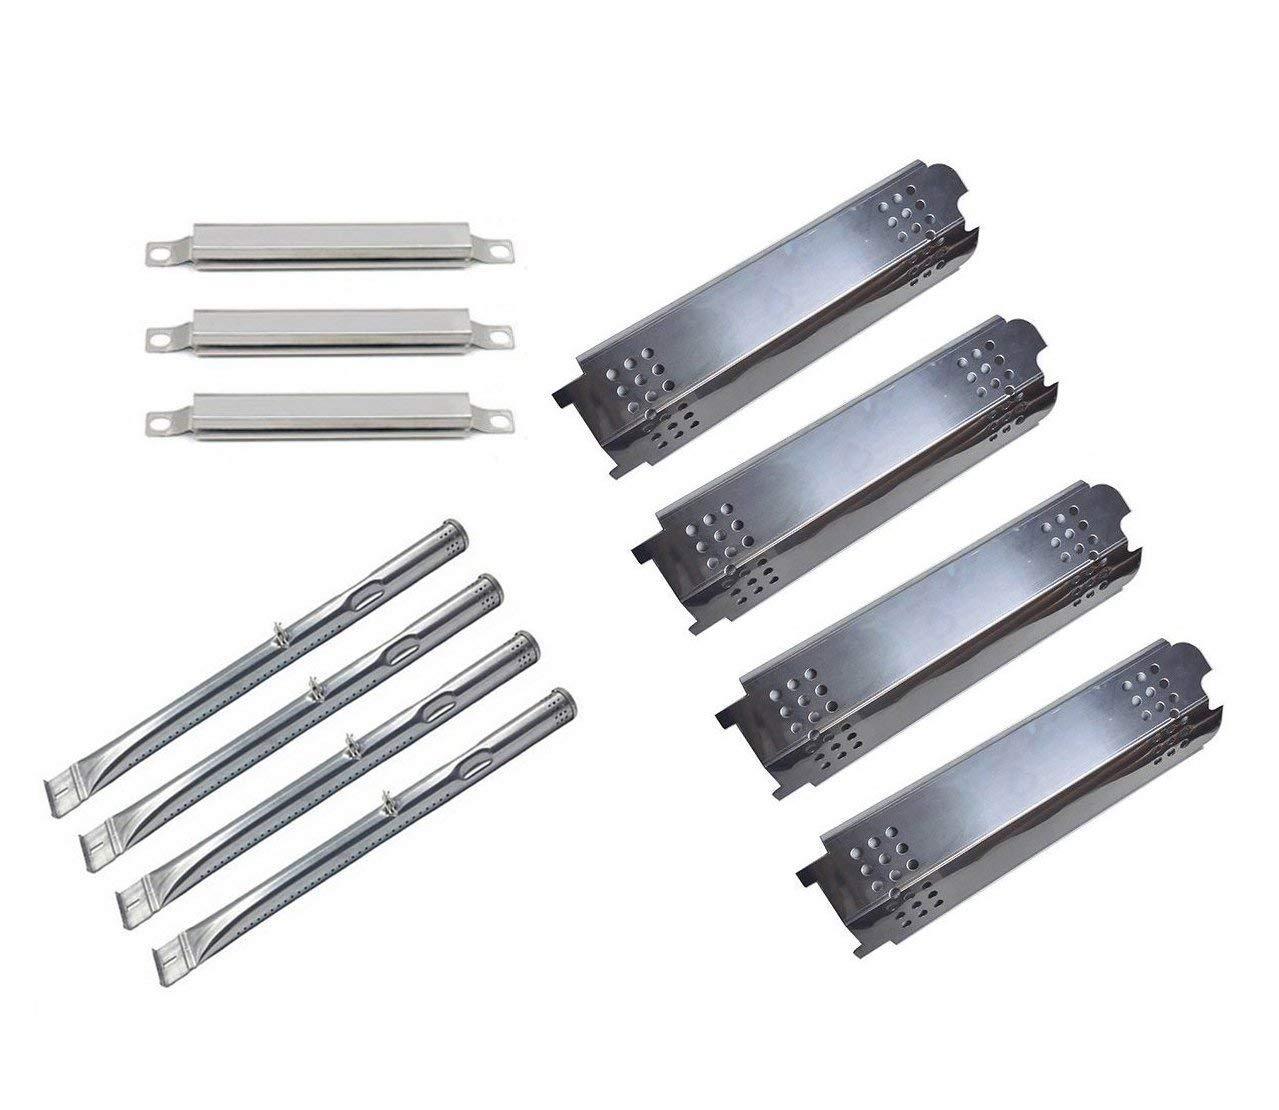 Wondjiont BBQ 4Pack Grill Burners,4Pack Heat Plate and 3Pack Crossver Tube Replacement Parts for Charbroil 463436215 463436213,Thermos 466360113 Gas Gril